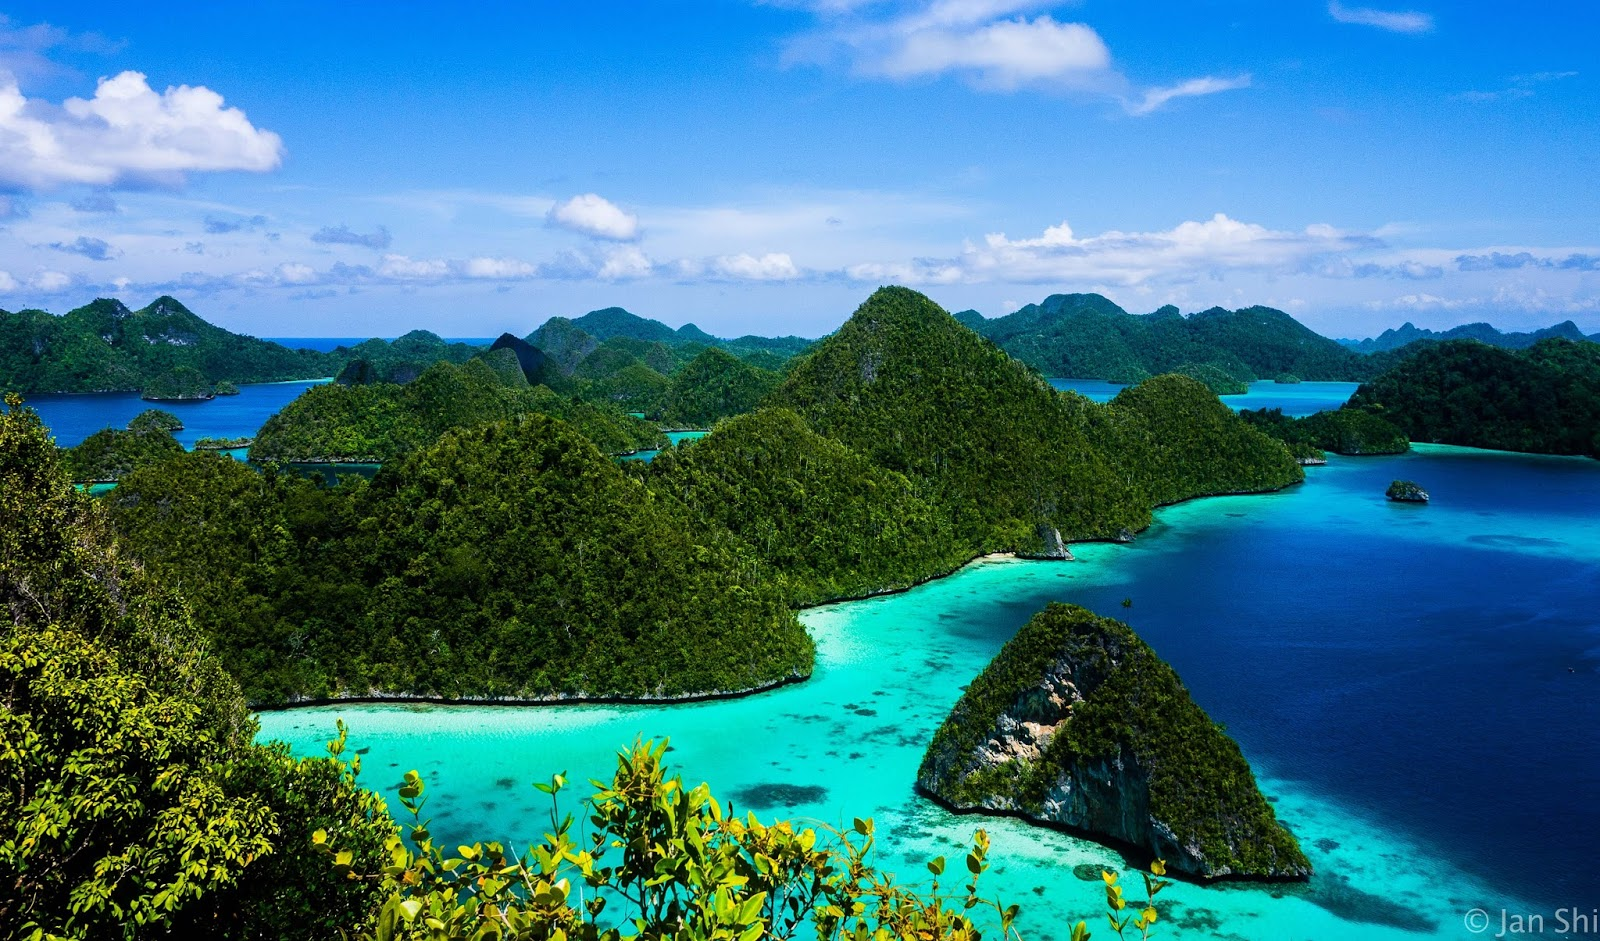 65. Blue sky in Raja Ampat